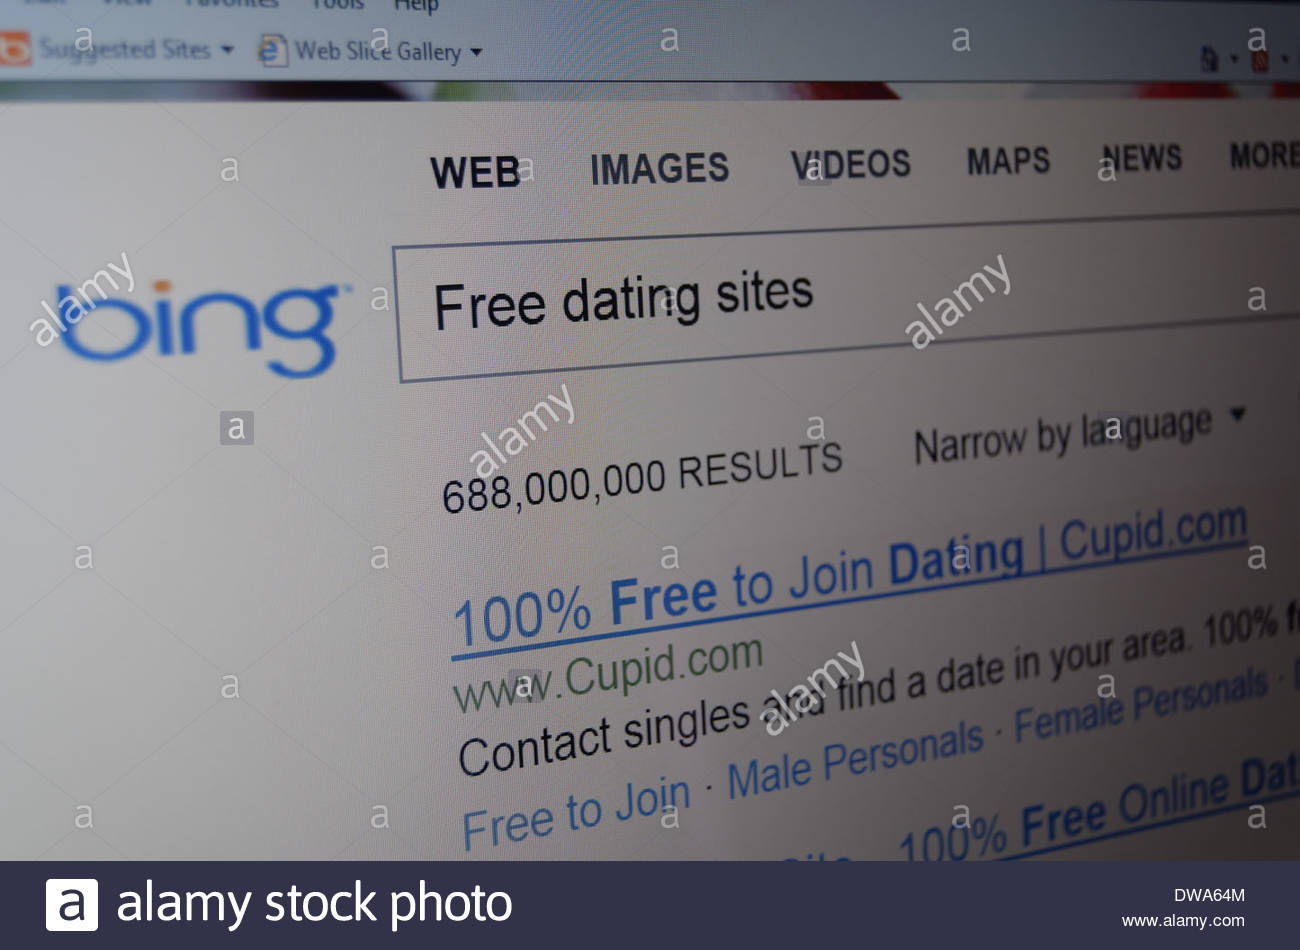 Dating site search engine